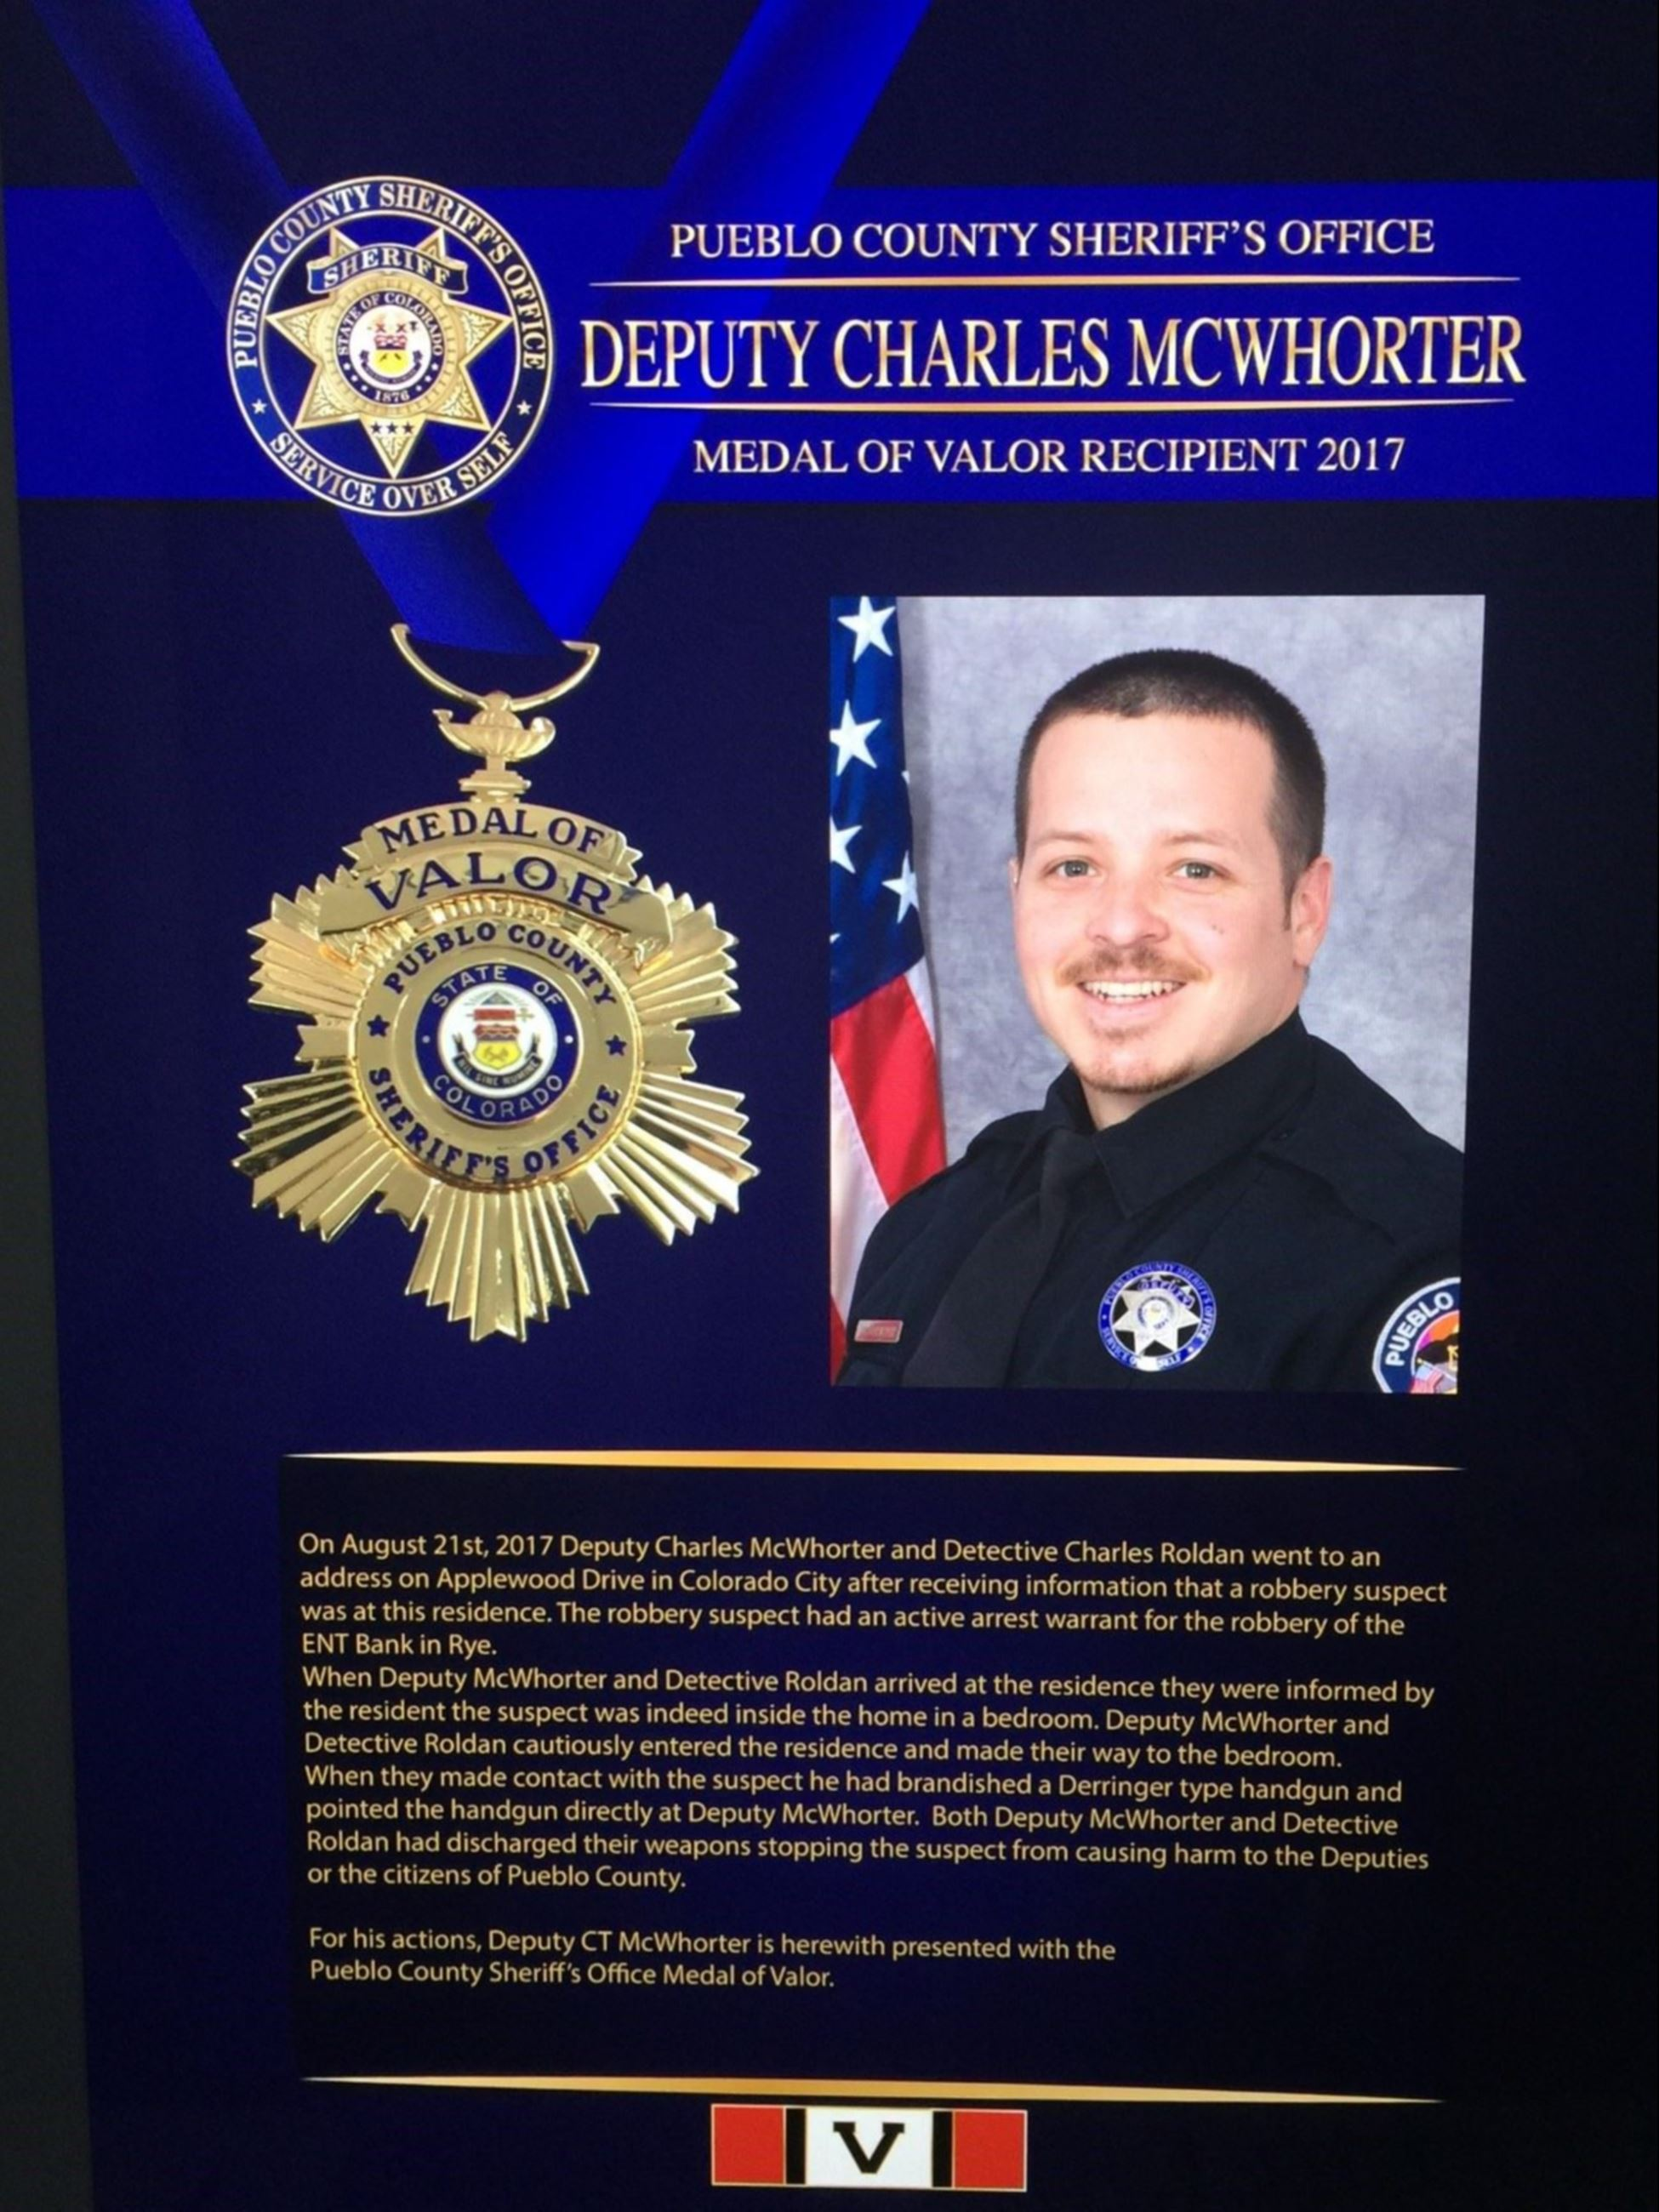 McWhorter Medal of Valor